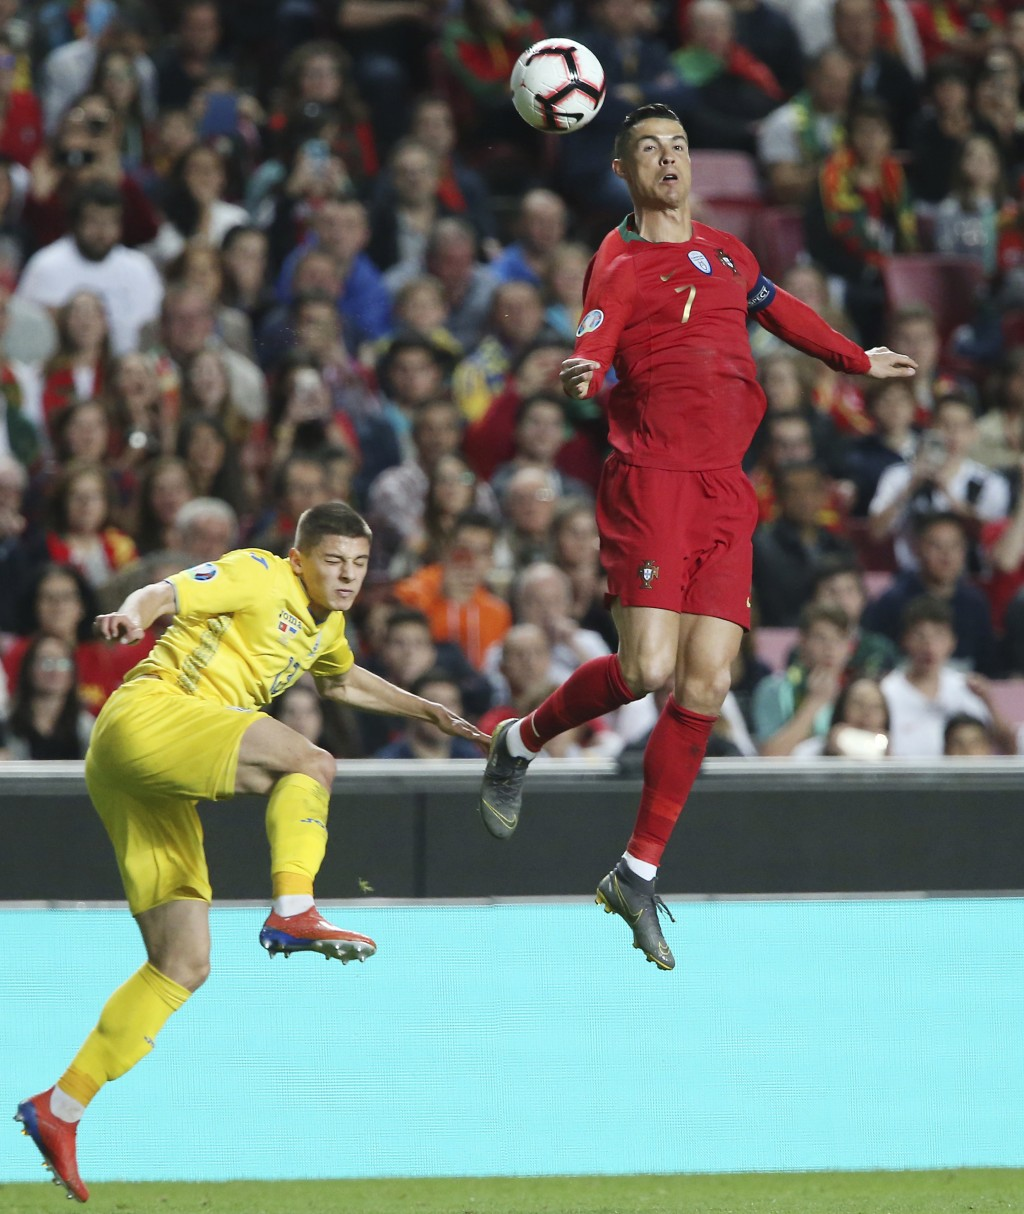 Portugal's Cristiano Ronaldo, right, challenges for the ball with Ukraine's Vitaliy Mykolenko during the Euro 2020 group B qualifying soccer match bet